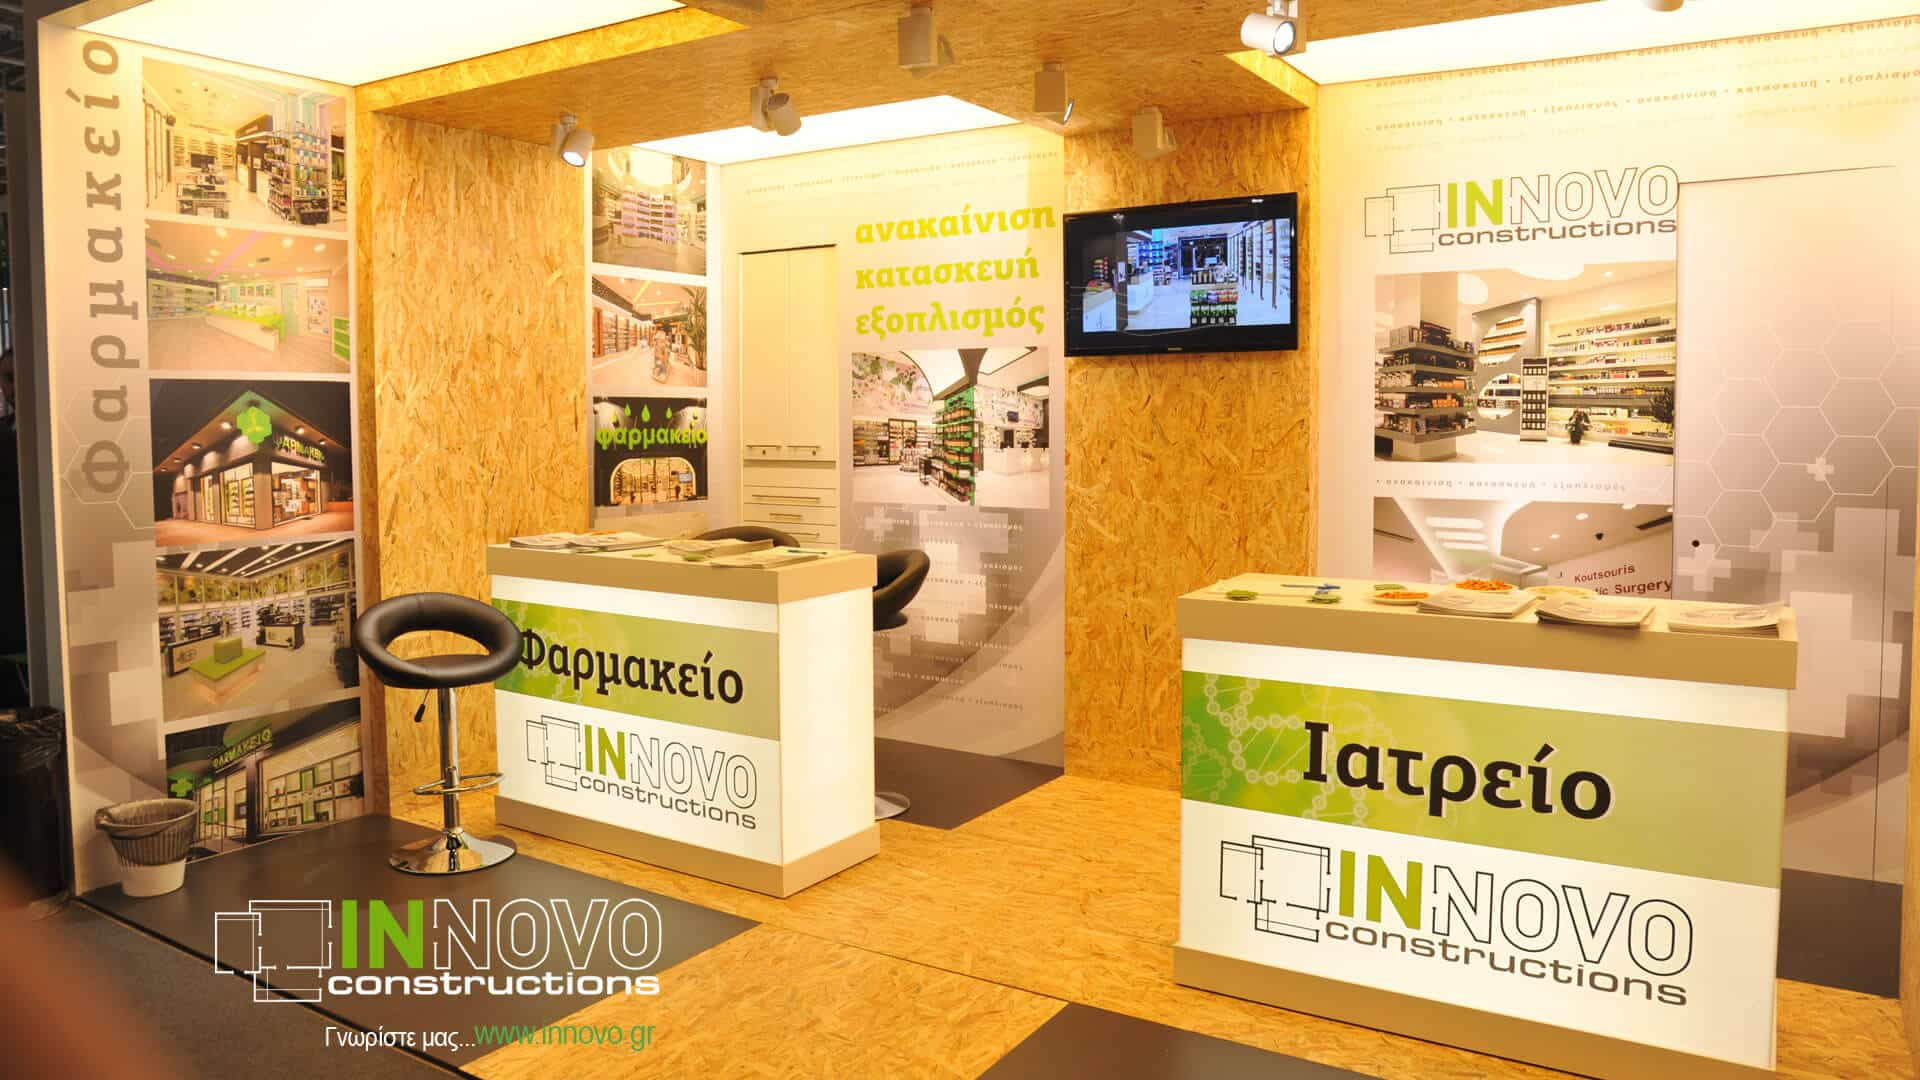 kataskevi-peripterou-exhibition-stand-construction-periptero-mas-6i-imerida-farmakopoion2015-2